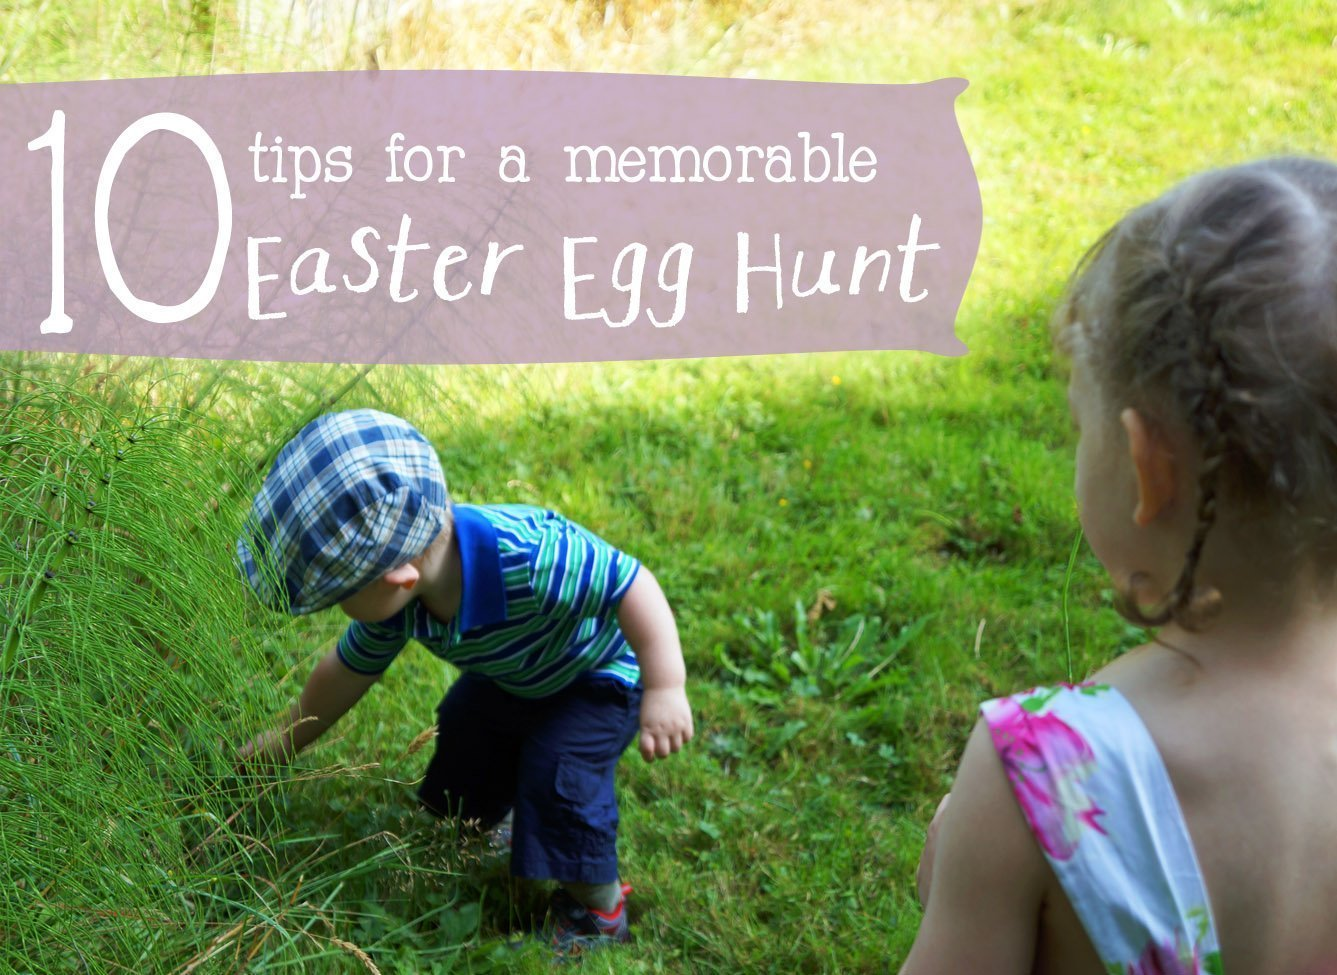 10 Tips for a Memorable Easter Egg Hunt